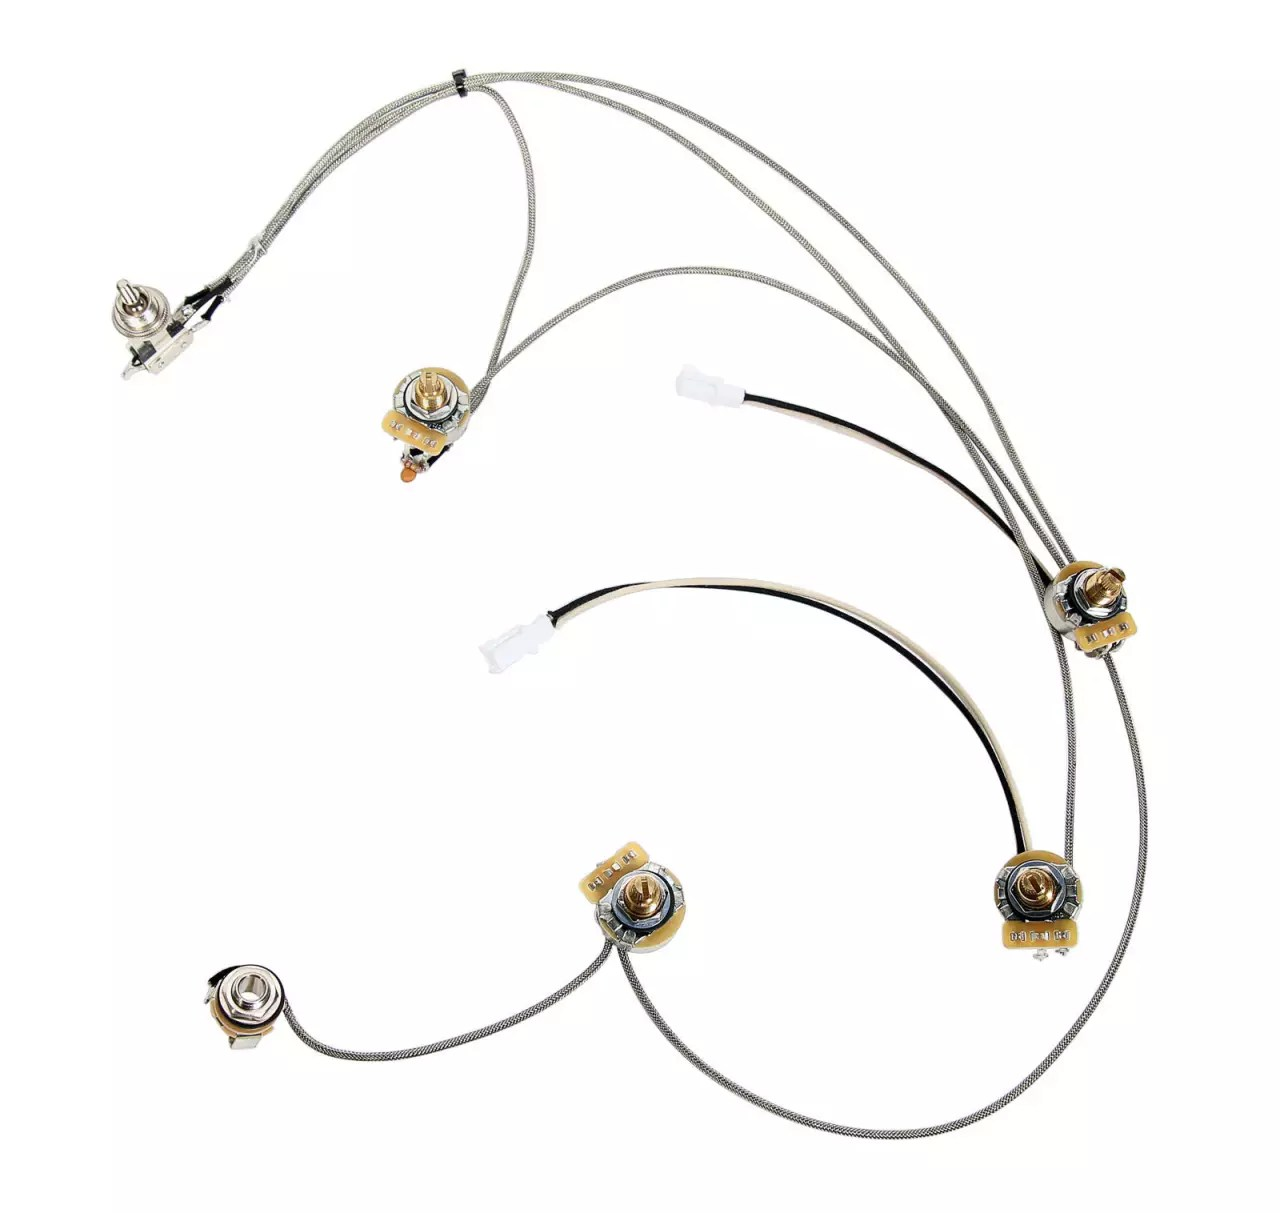 920d Wiring Harness For Gretsch Electromatic W Quick Connect